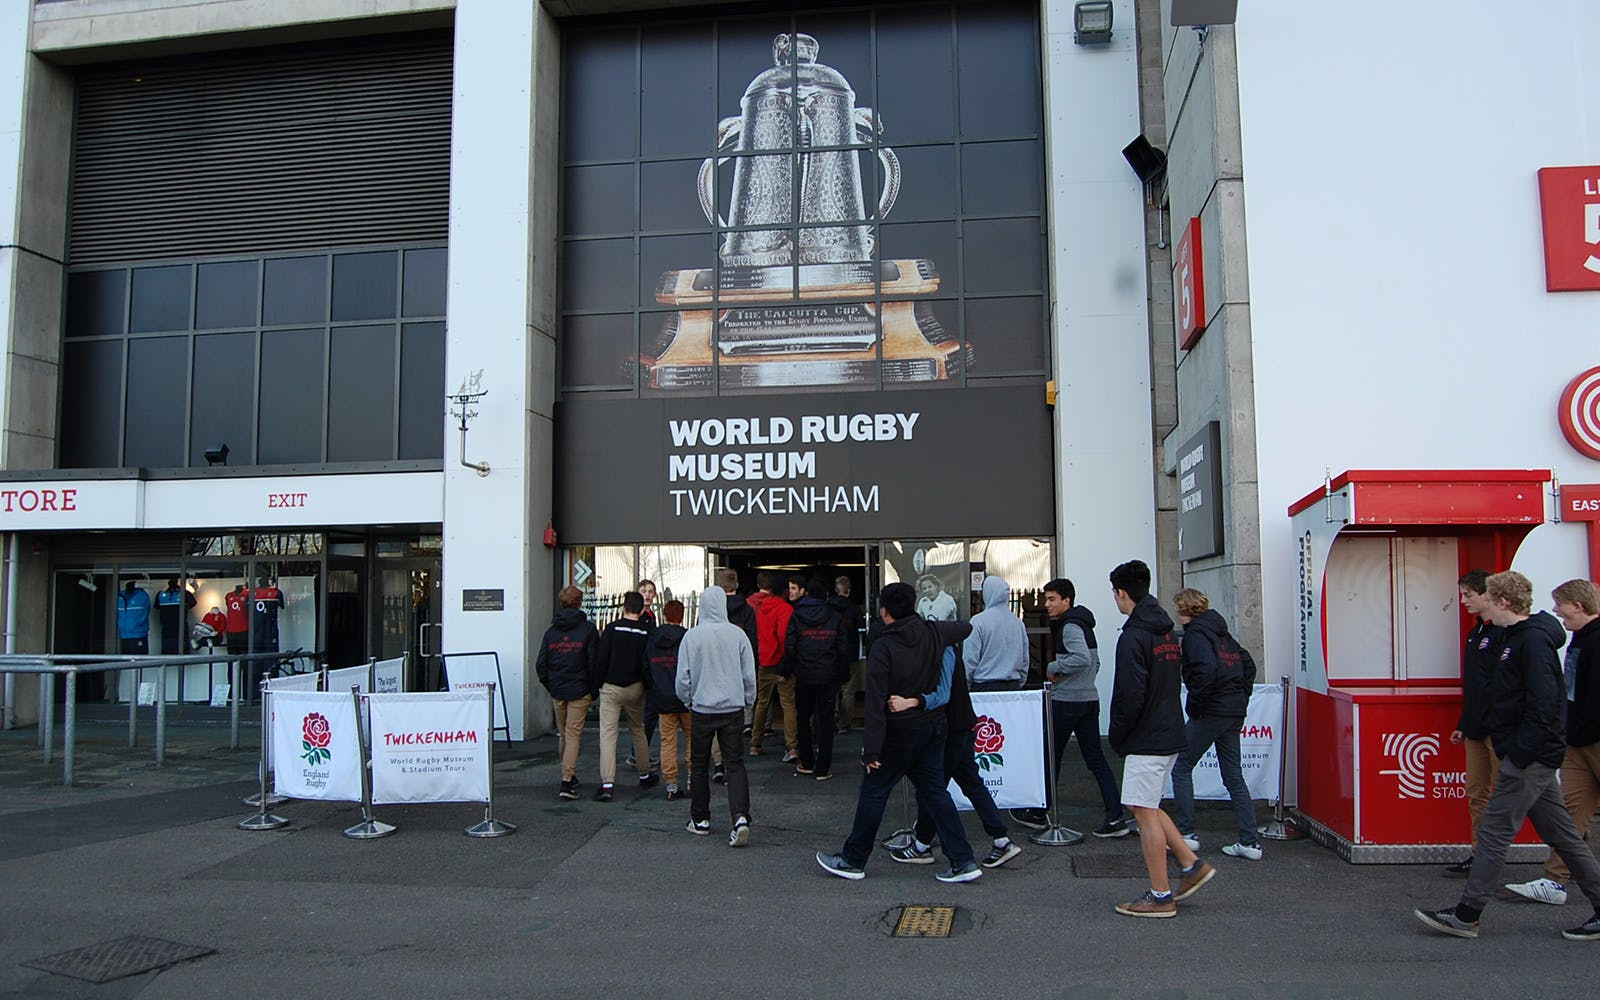 twickenham stadium & world rugby museum - behind the scenes tour-1